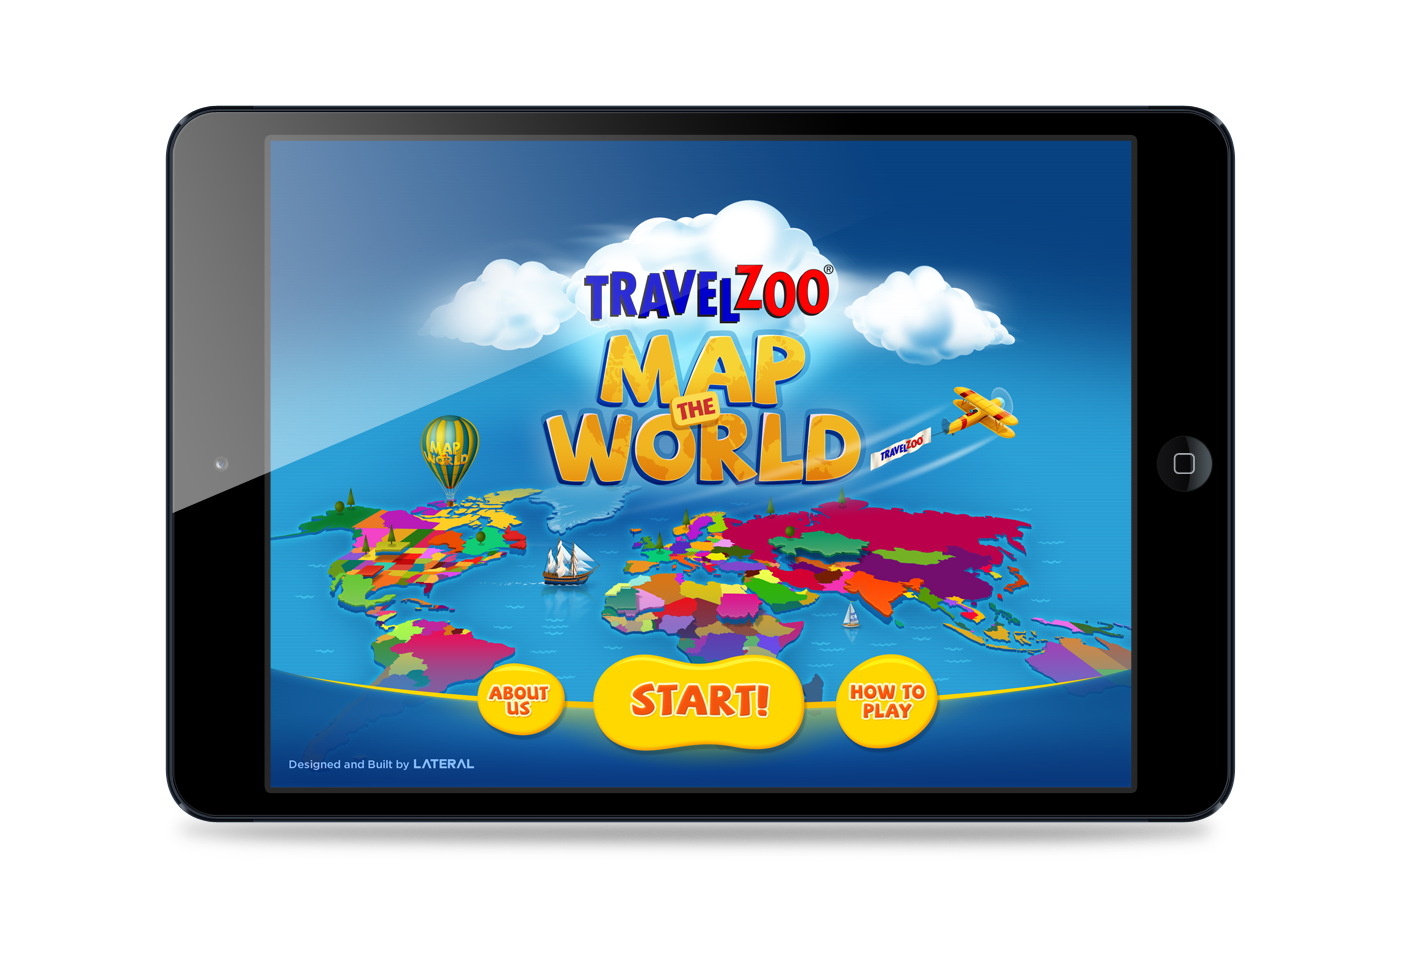 Travelzoo Launches Free iPad App to Give Kids In-Depth View